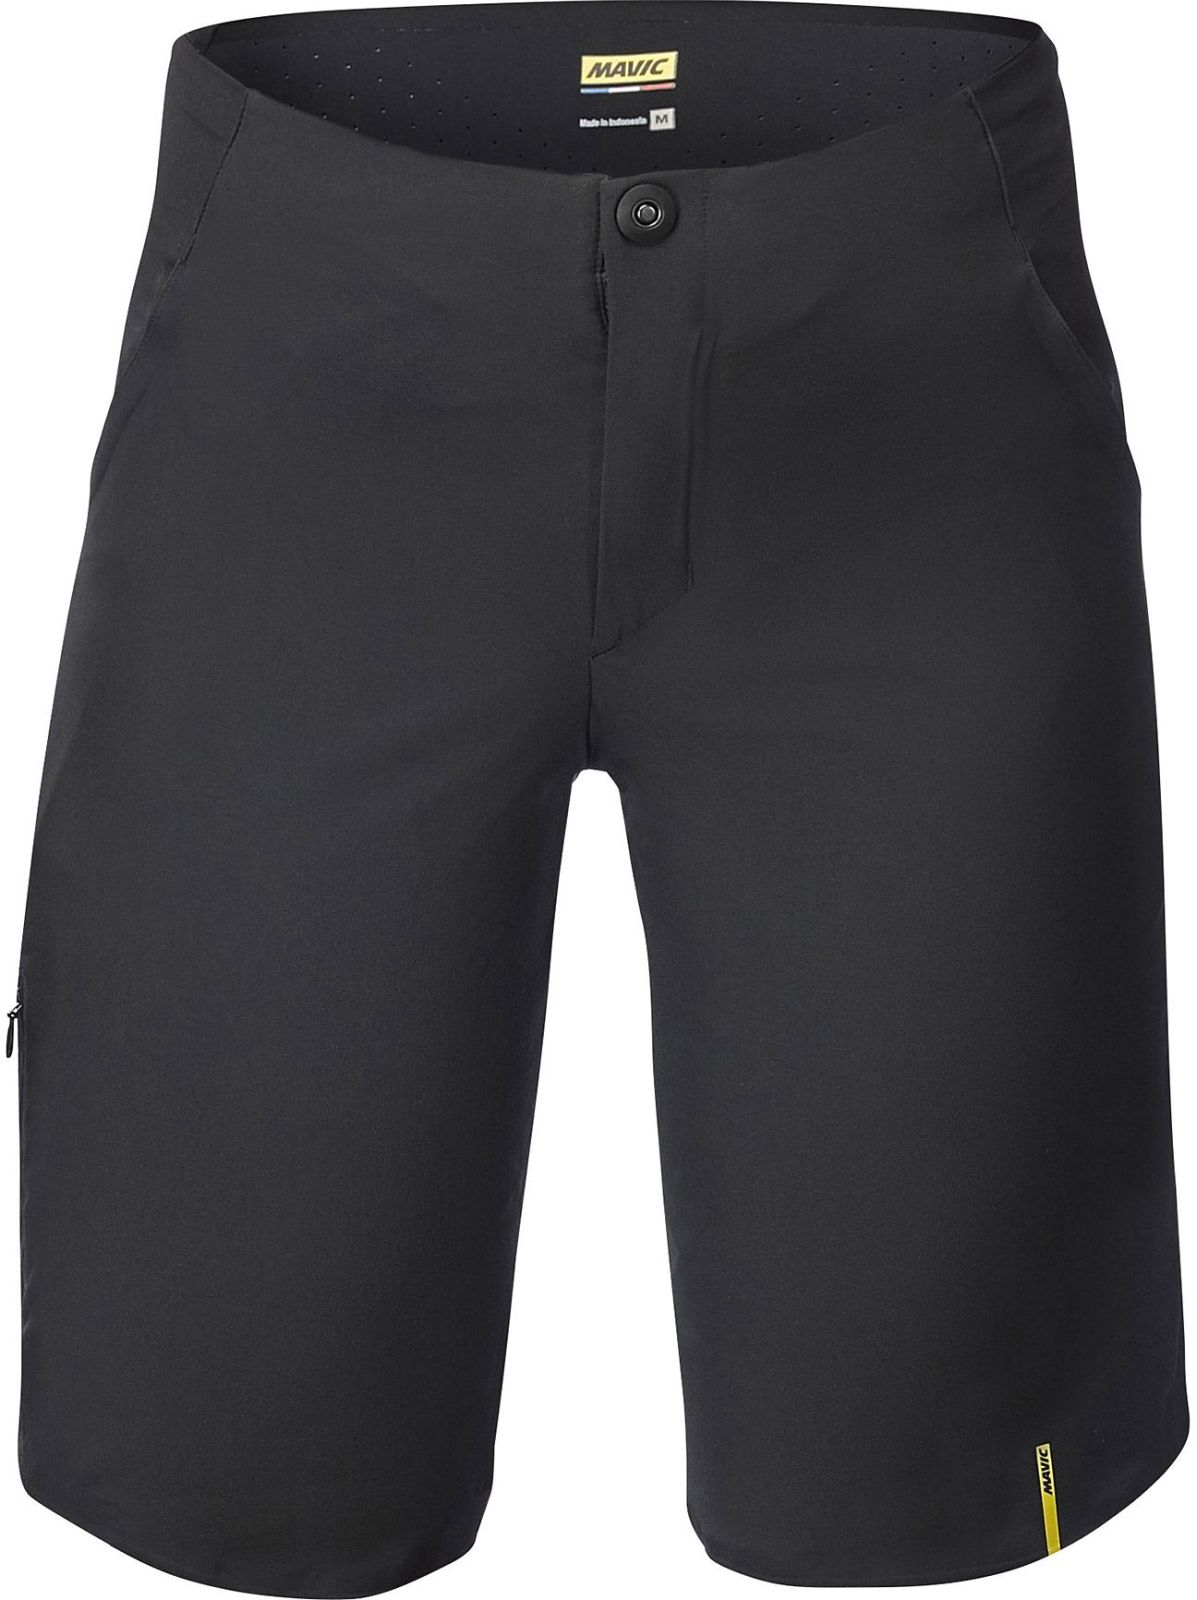 Mavic Echappée Baggy Short - Black L